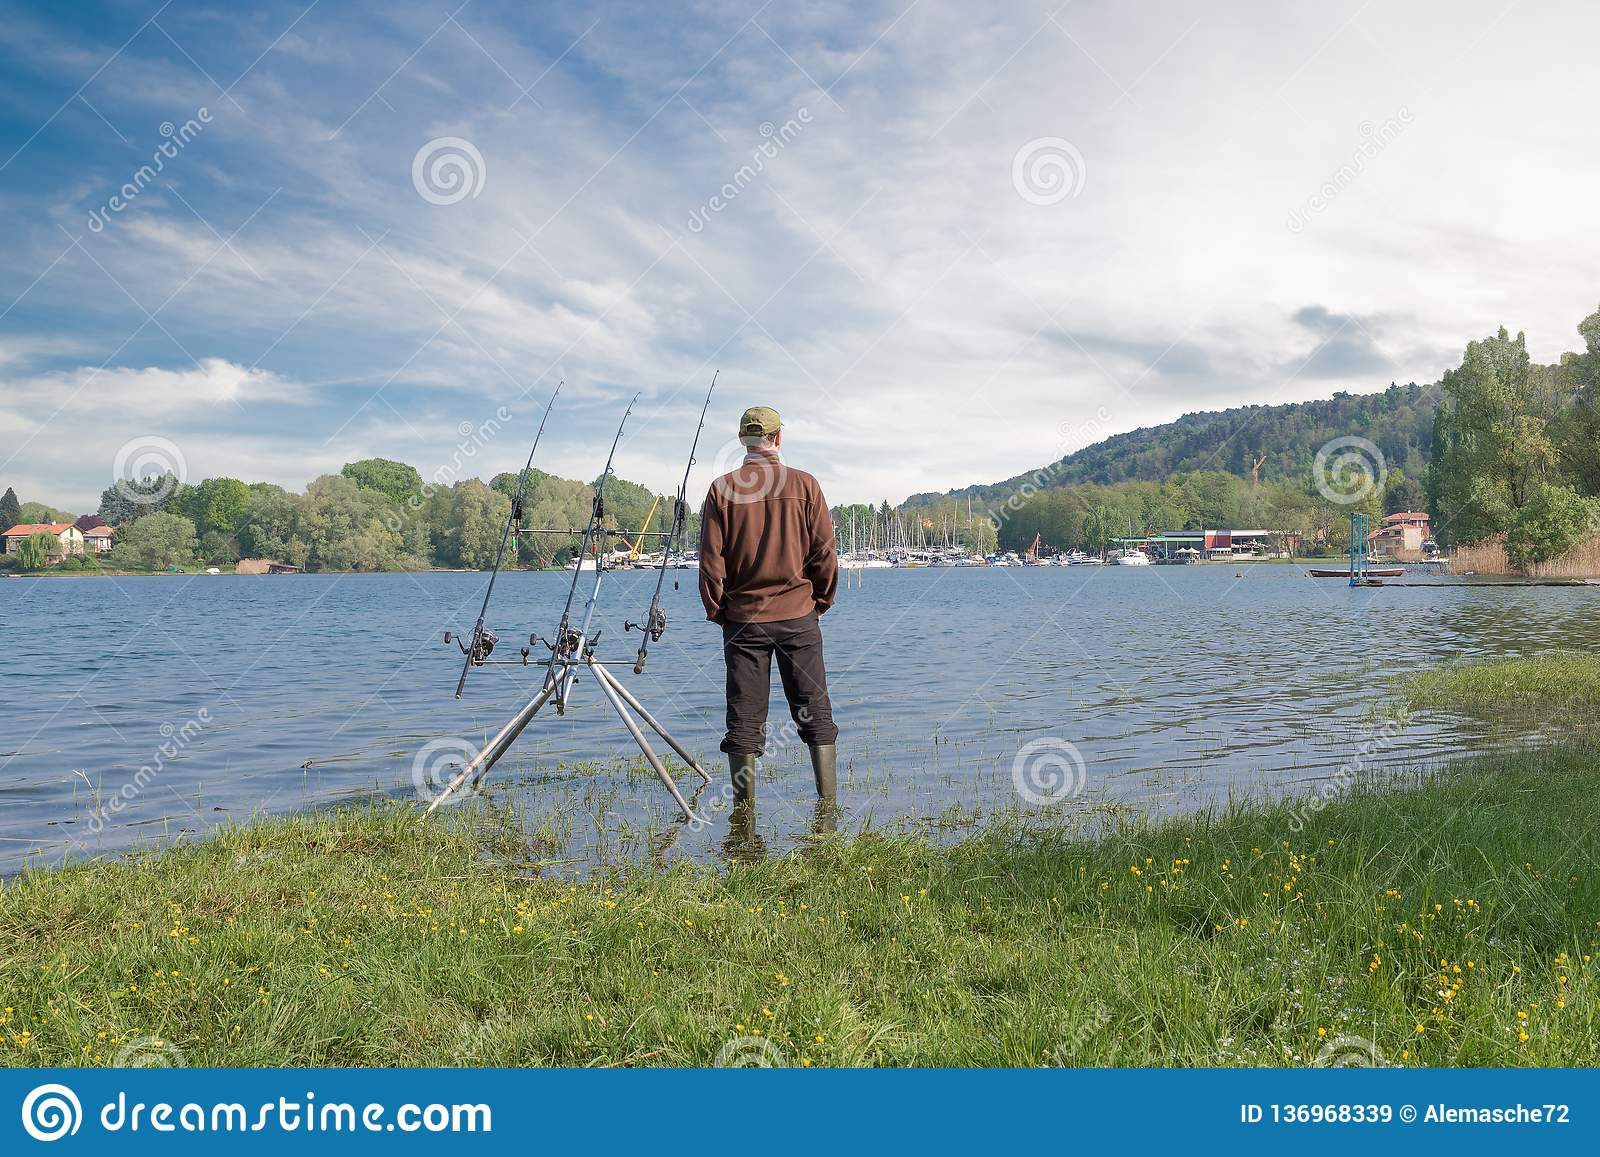 Fishing Adventures Angler Is Fishing With Carp Fishing Technique Stock Image Image Of Life Copy 136968339